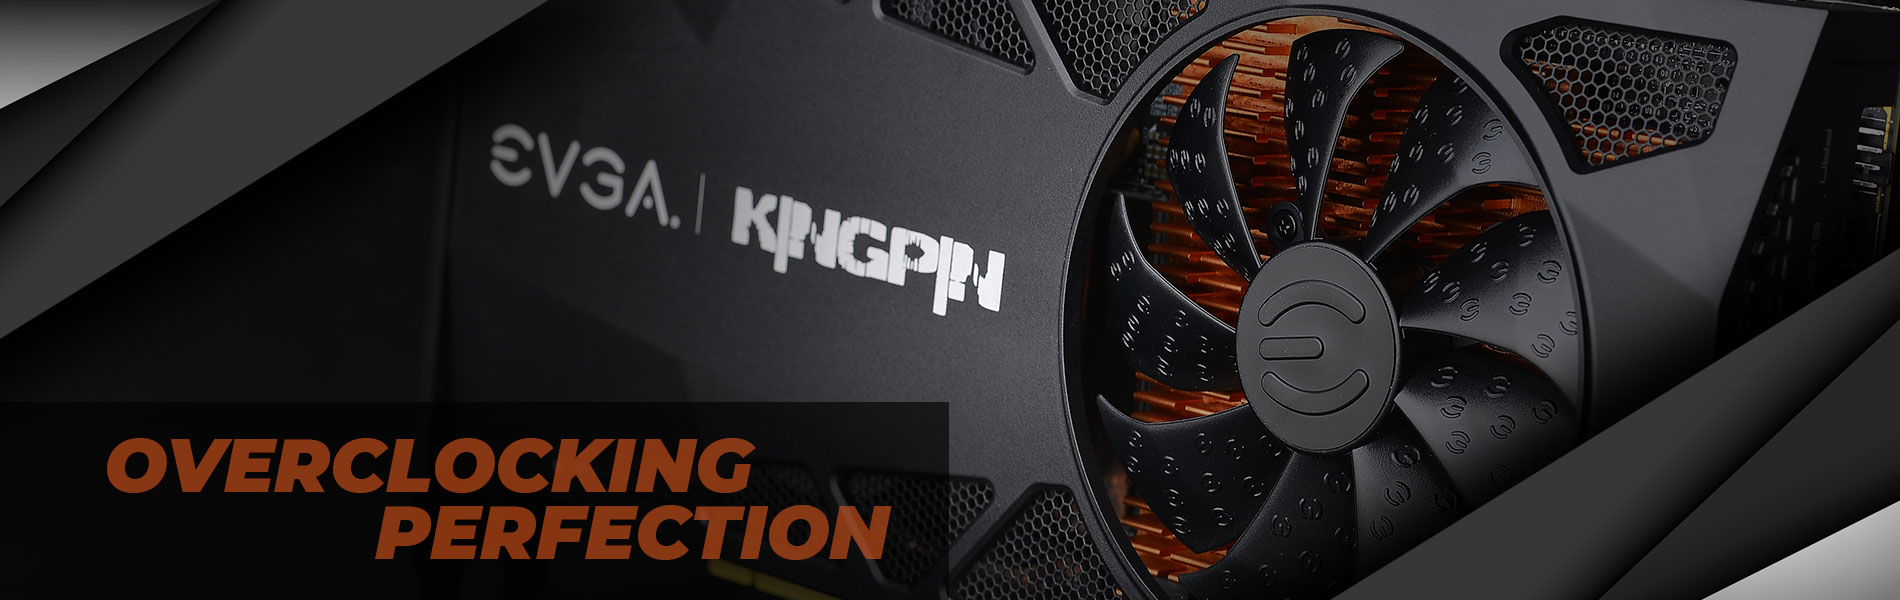 EVGA GeForce RTX 2080 Ti KINGPIN Launched For $1900 US